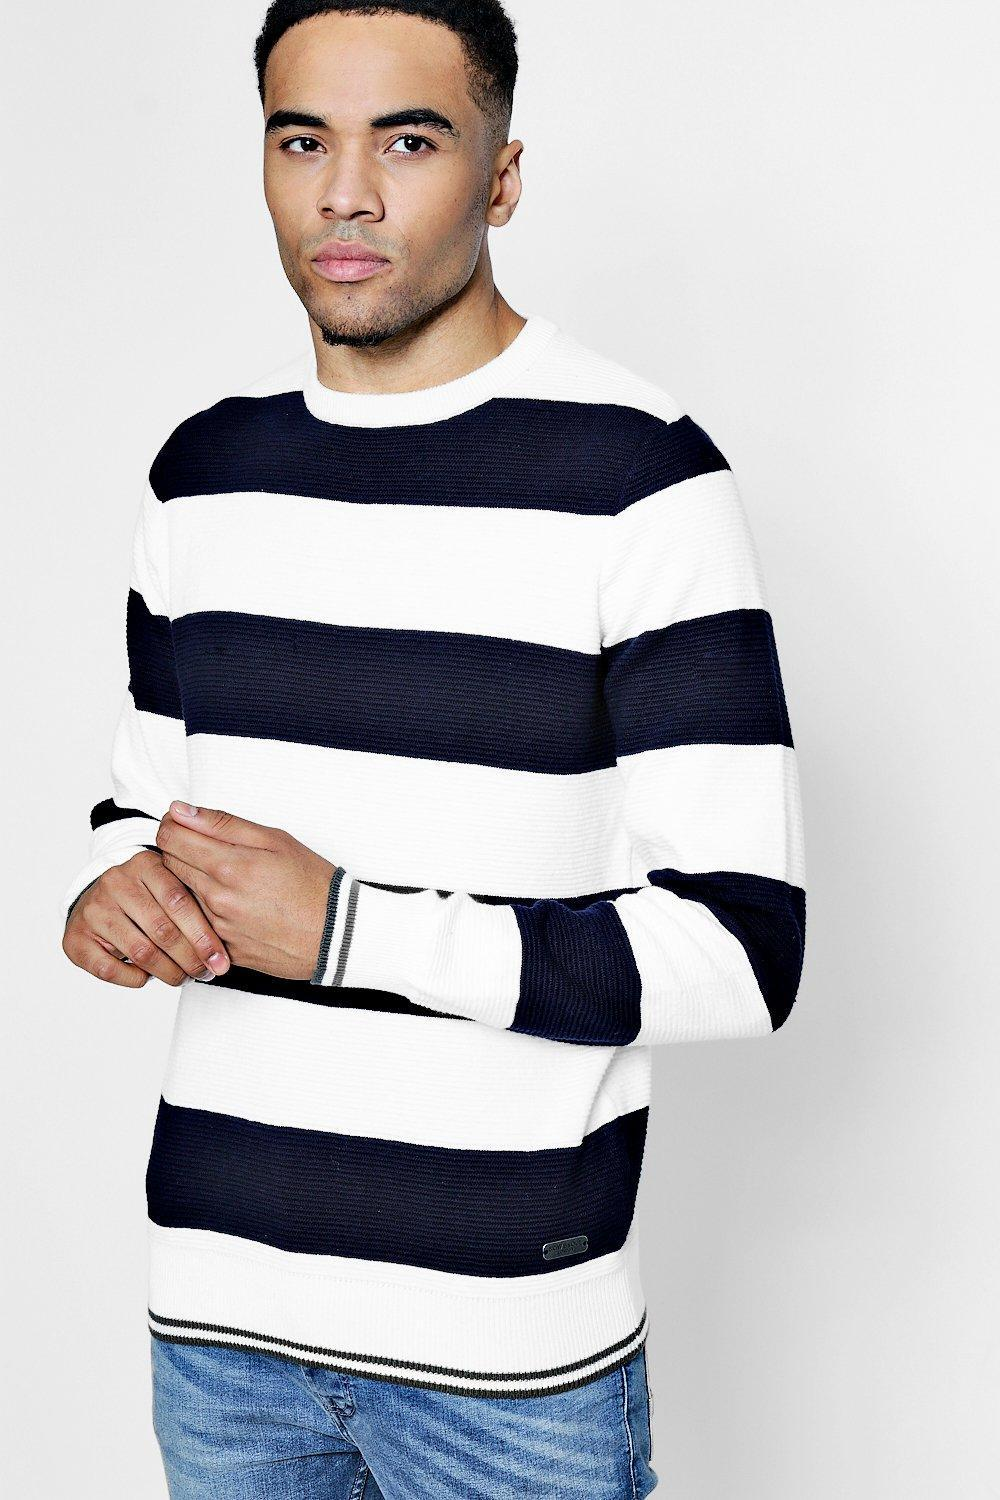 HTOOHTOOH Mens Knitted Winter Round Neck Knitwear Stripe Slim Pullover Sweaters